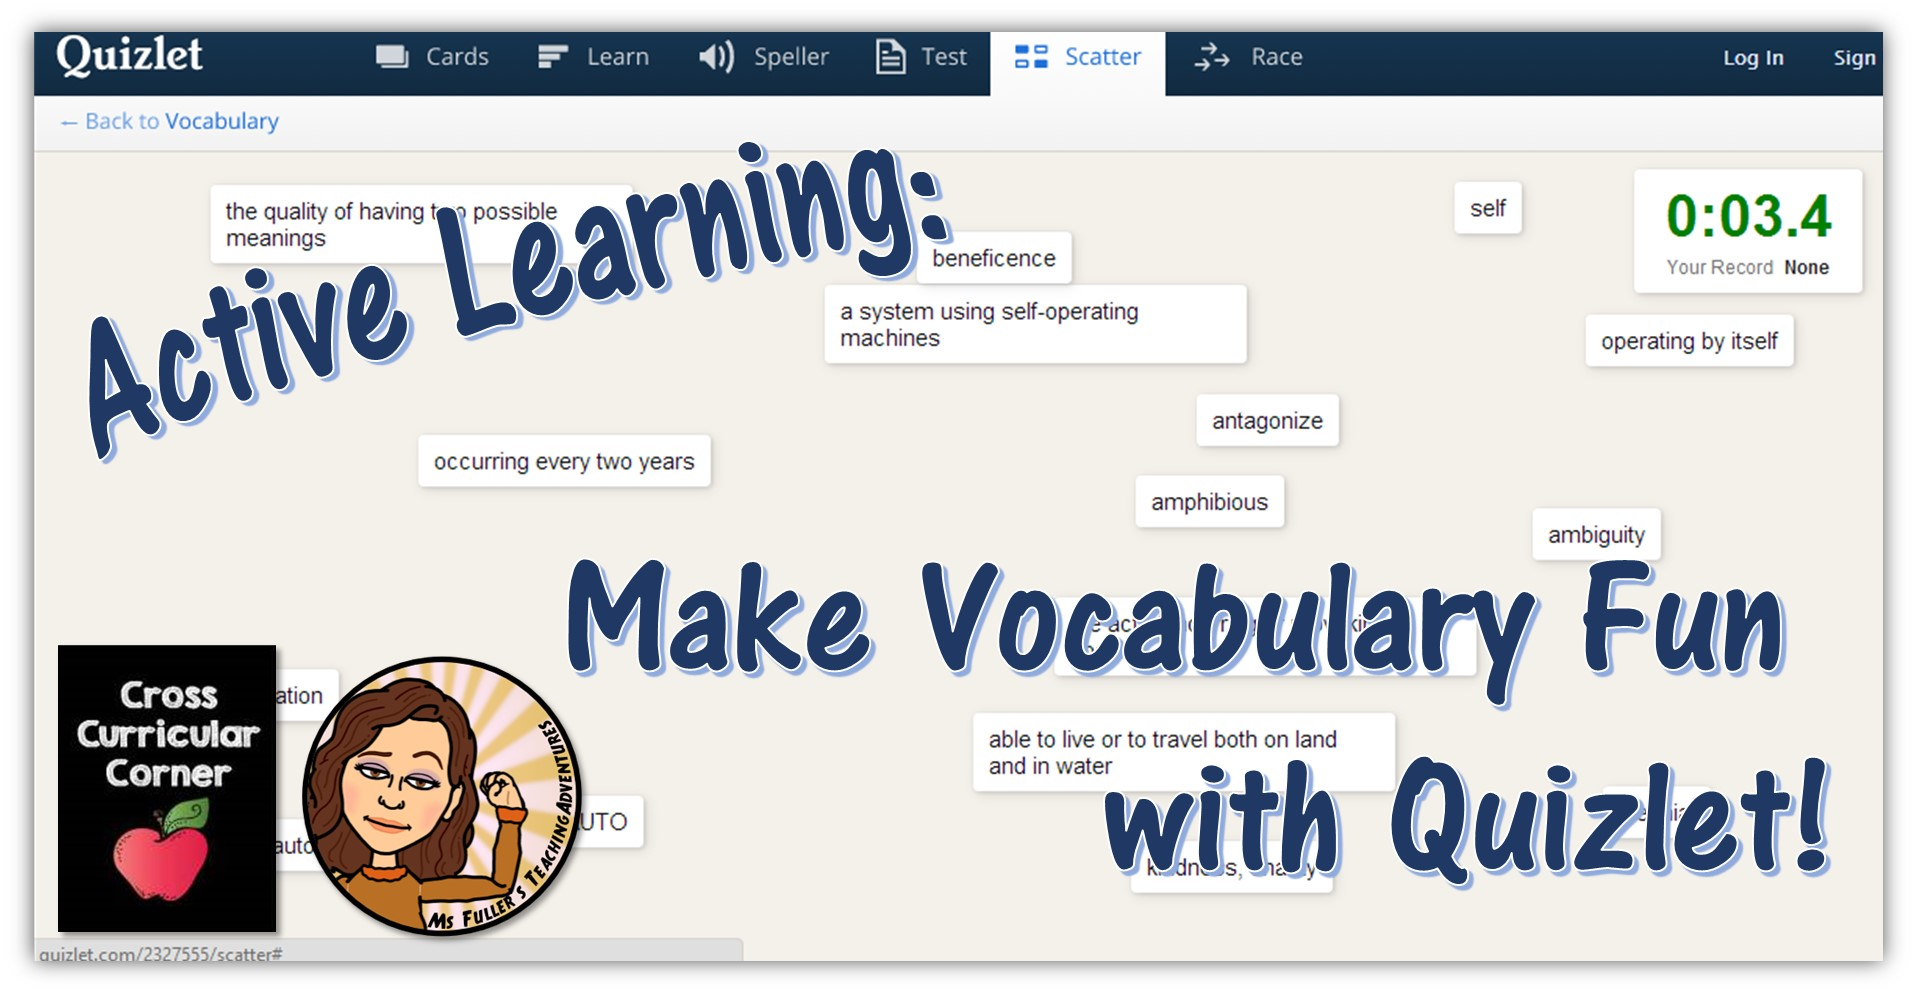 Making Vocabulary Fun With Quizlet